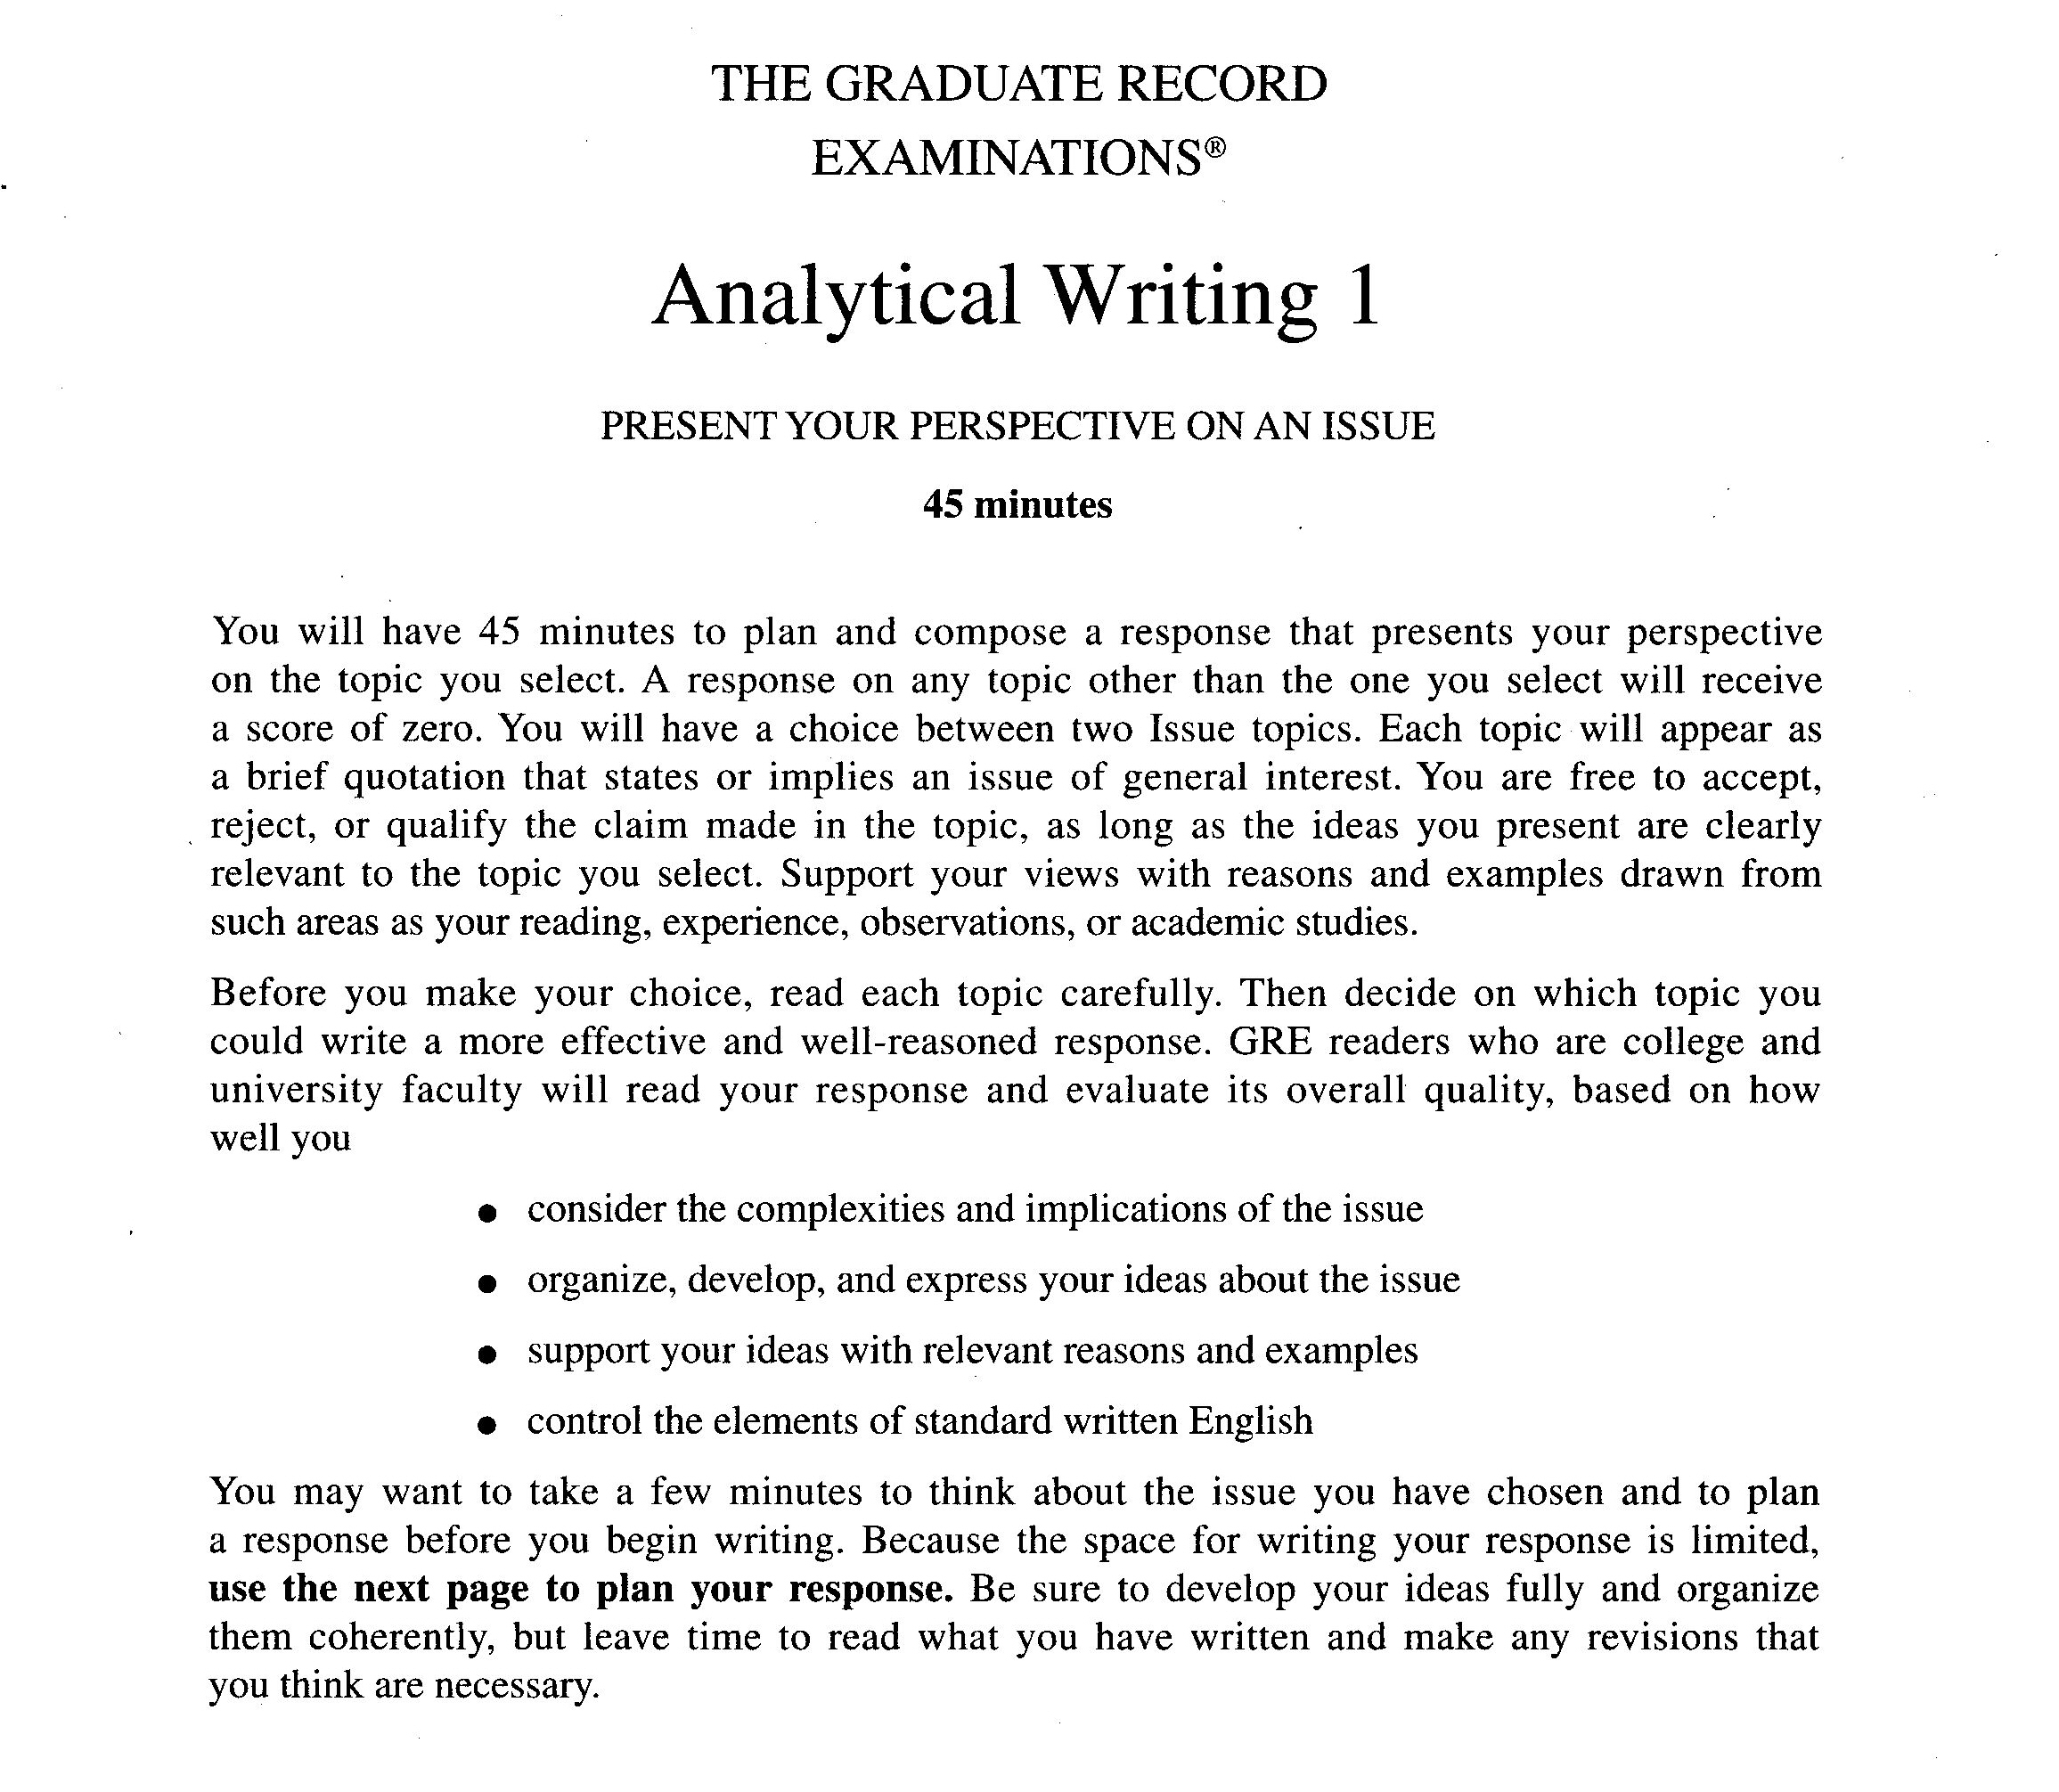 analytical essay structure analysis essay structure ideas about  analytical essays examples analytical essays examples gxart gre analytical writing sample essays media essay writing basic